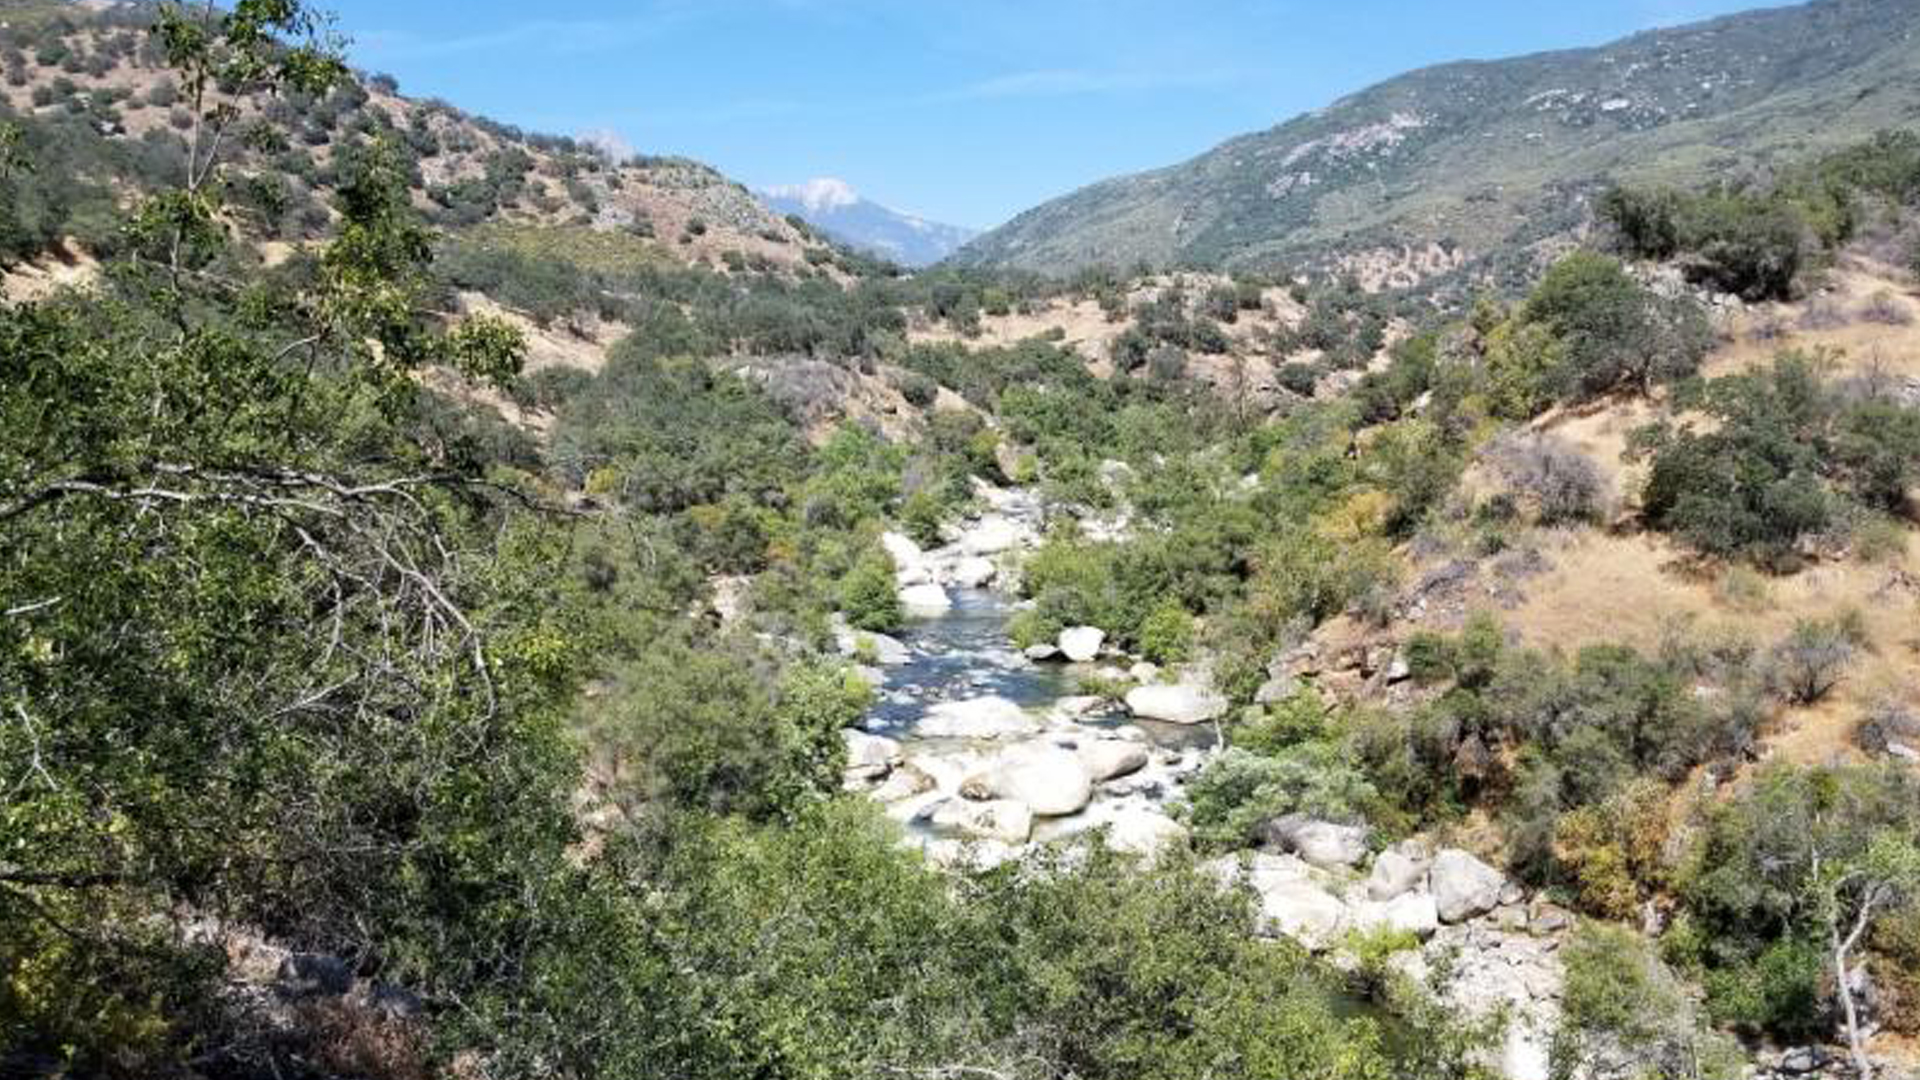 An undated photo shows the Kaweah River in Sequoia National Park. (Credit: National Park Service)